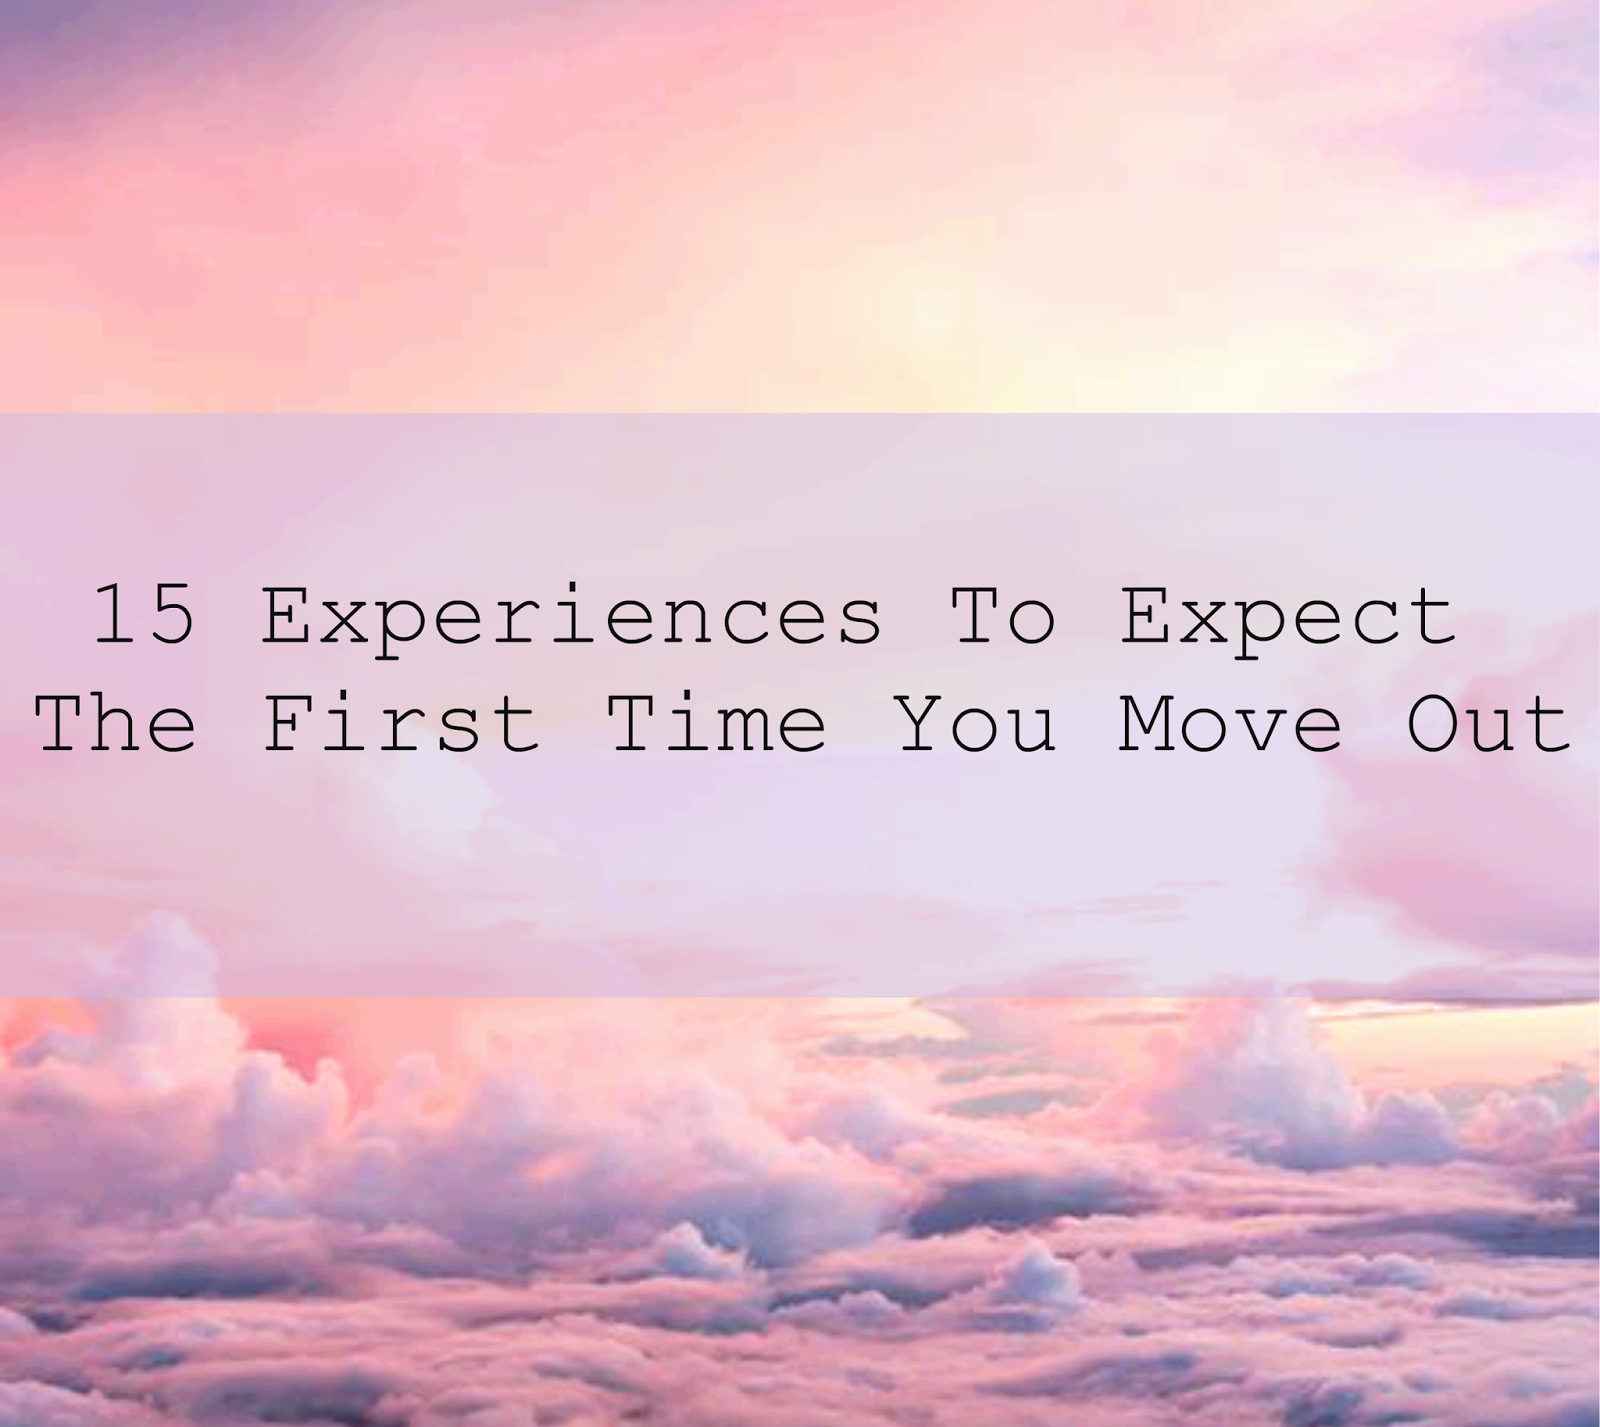 lifestyle, leaving home, moving out, what to expect when you move out, family, advice, youwishyou, 2015,